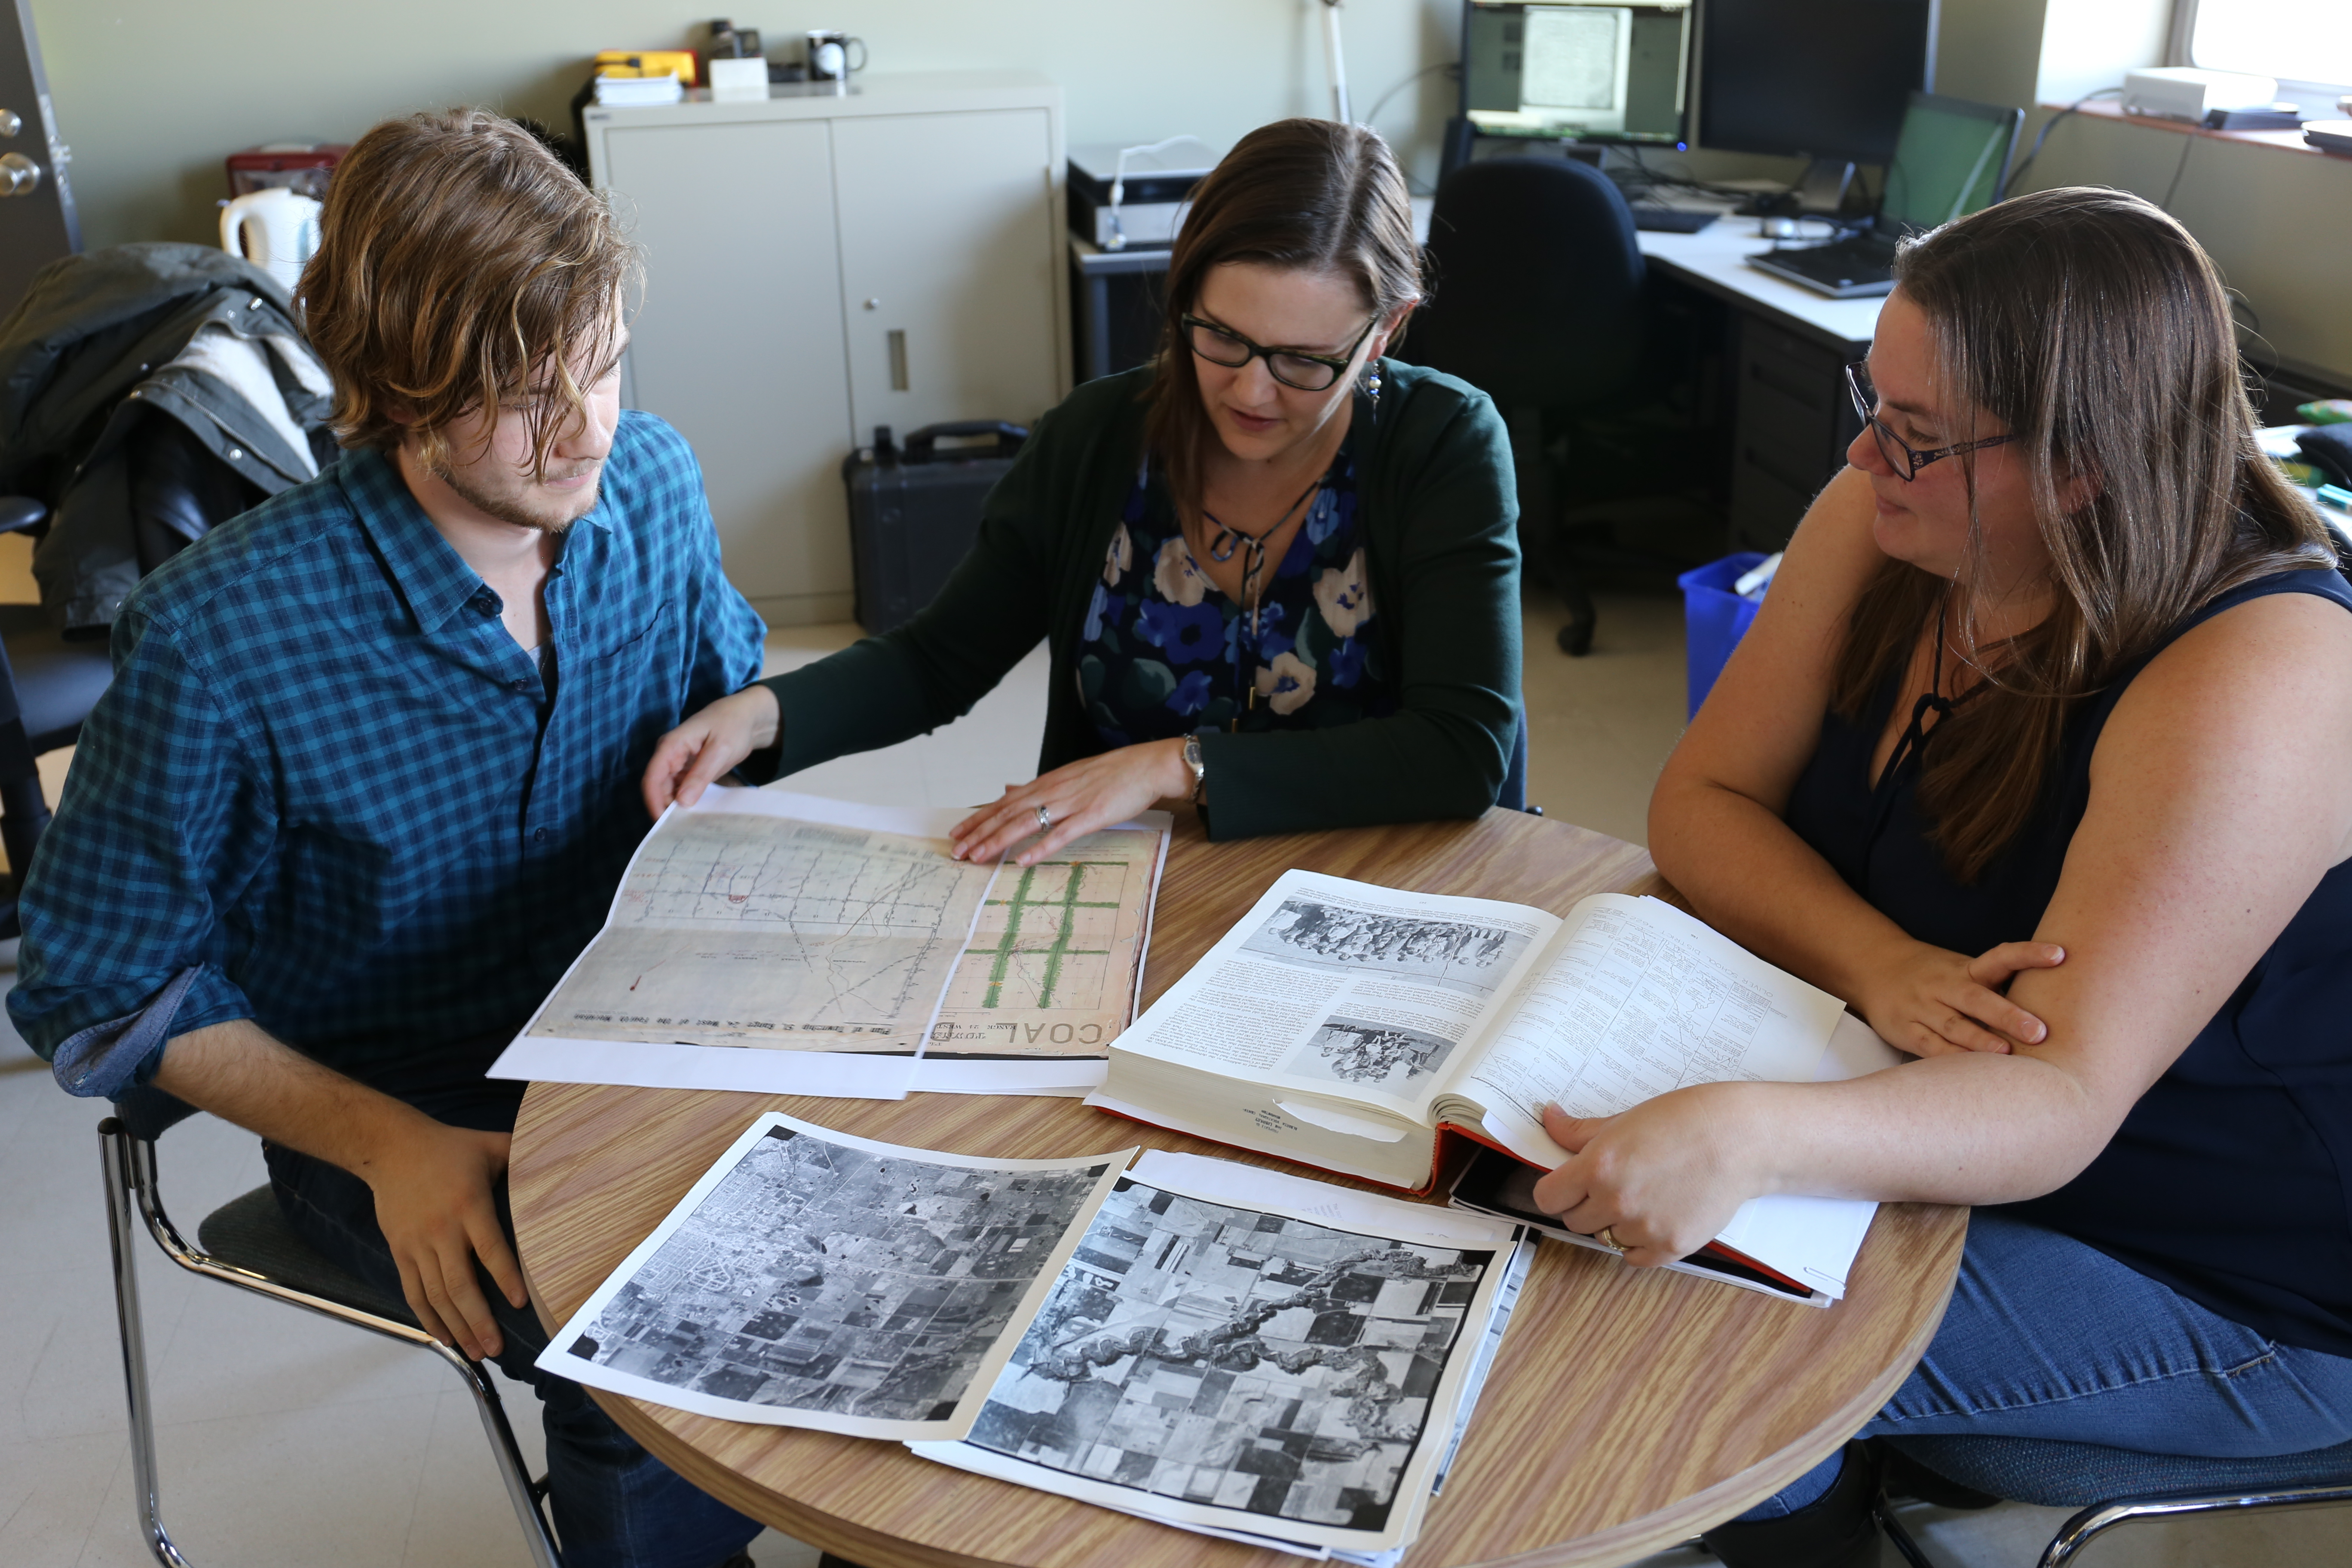 Kisha Supernant, centre, is working with University of Alberta students William Wadsworth, left, and Kathy Gadd, right, to find Papaschase burial sites. (Stephanie Dubois/CBC)